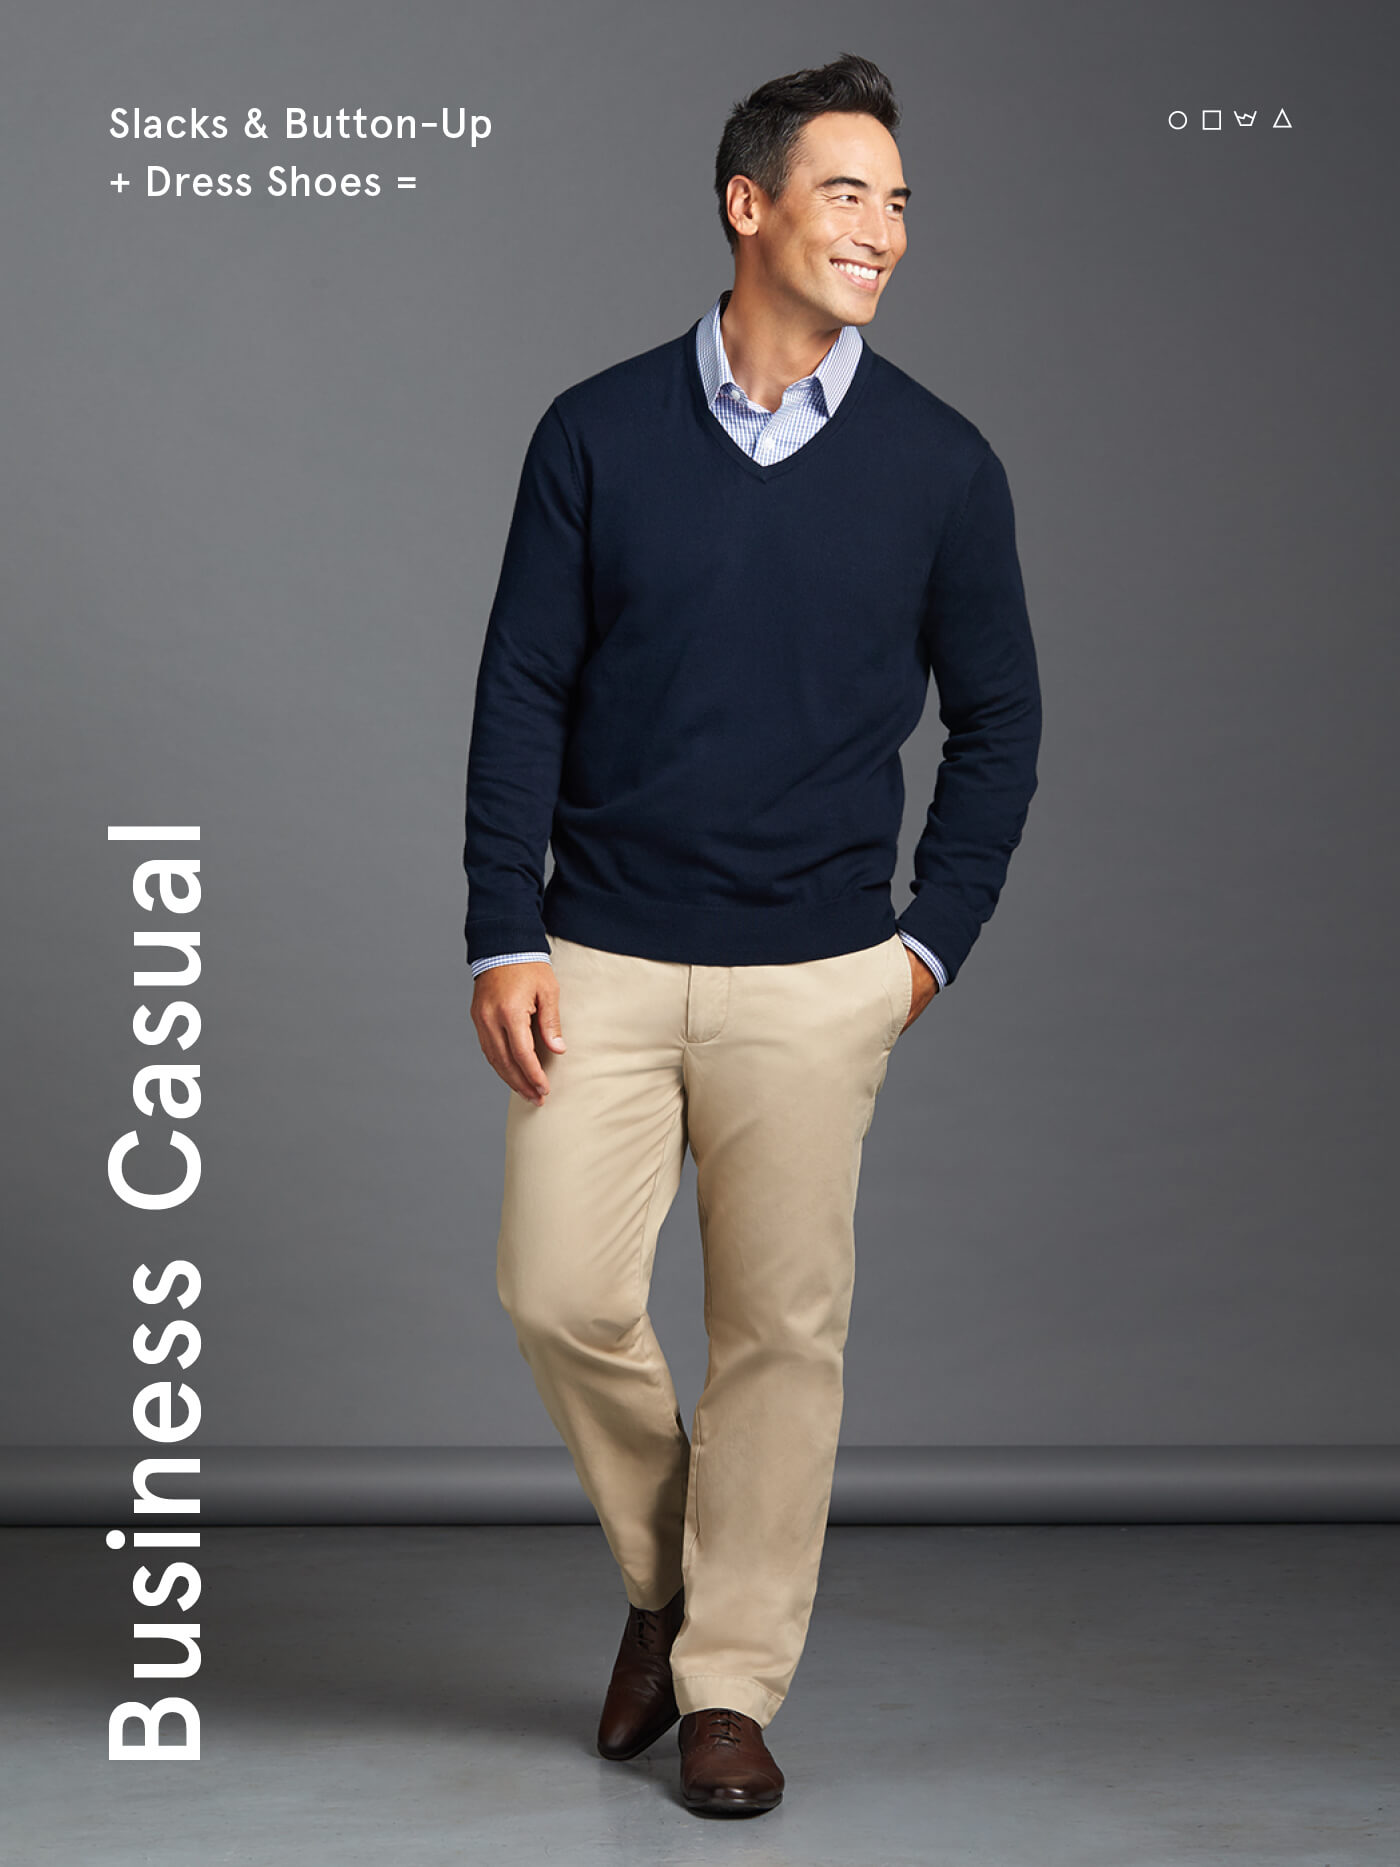 0a757c922cd2 what is business casual for men? slack and a button-up with dress shoes